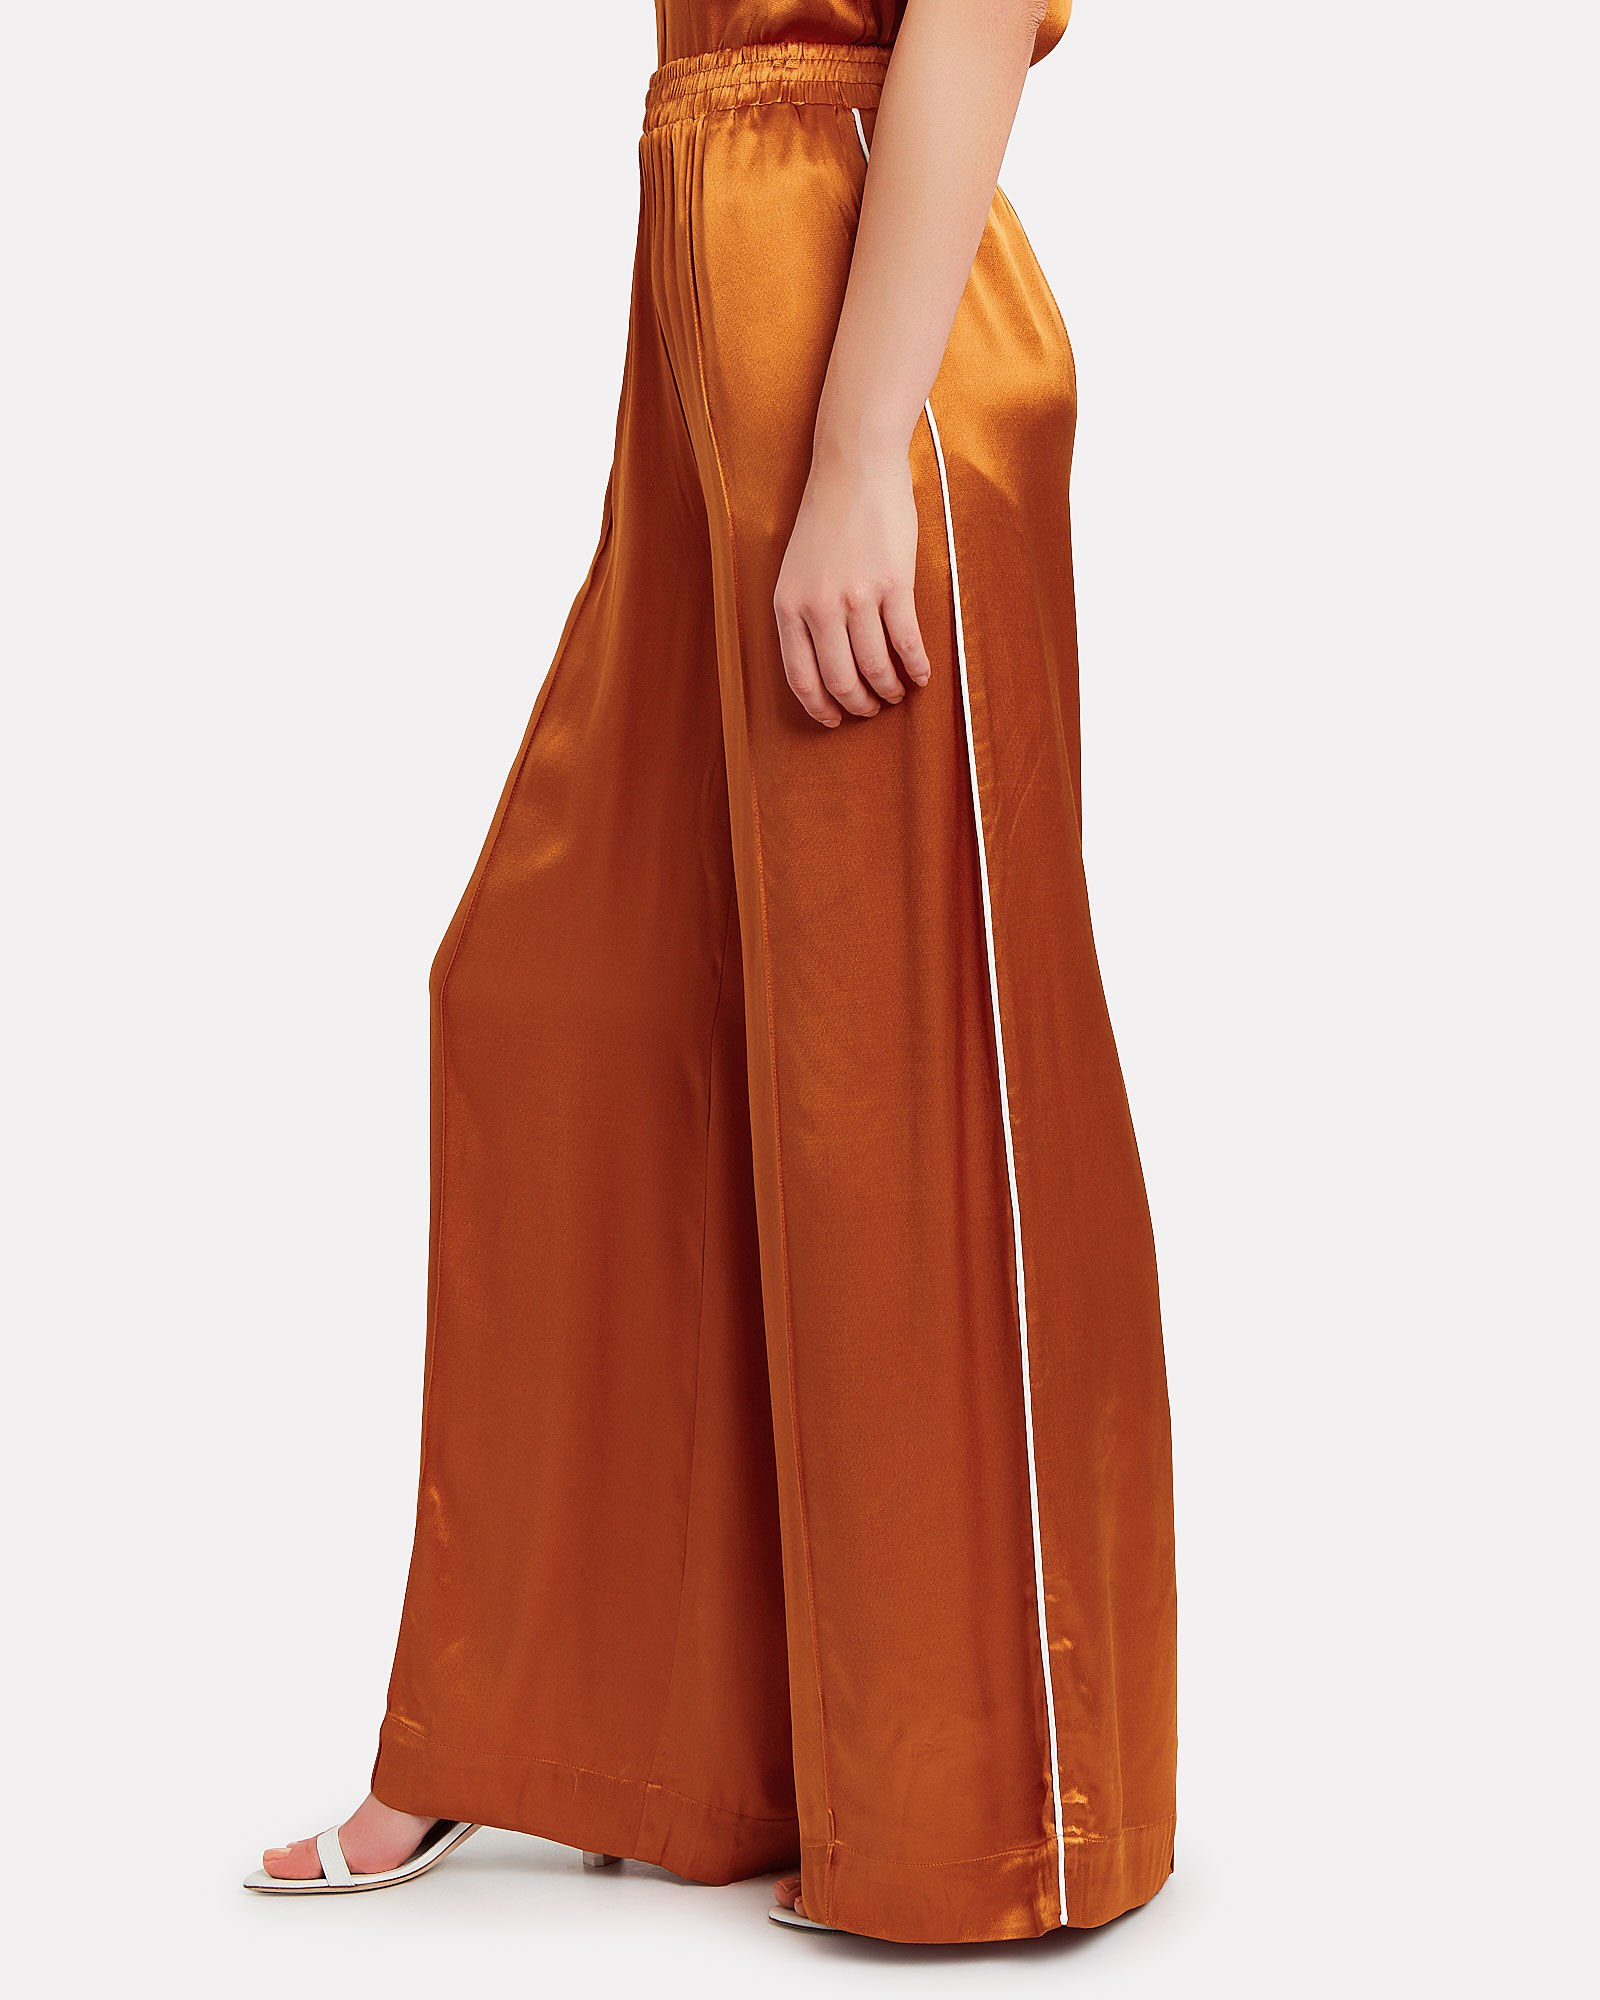 Tilja Satin Wide Leg Trousers, ORANGE, hi-res